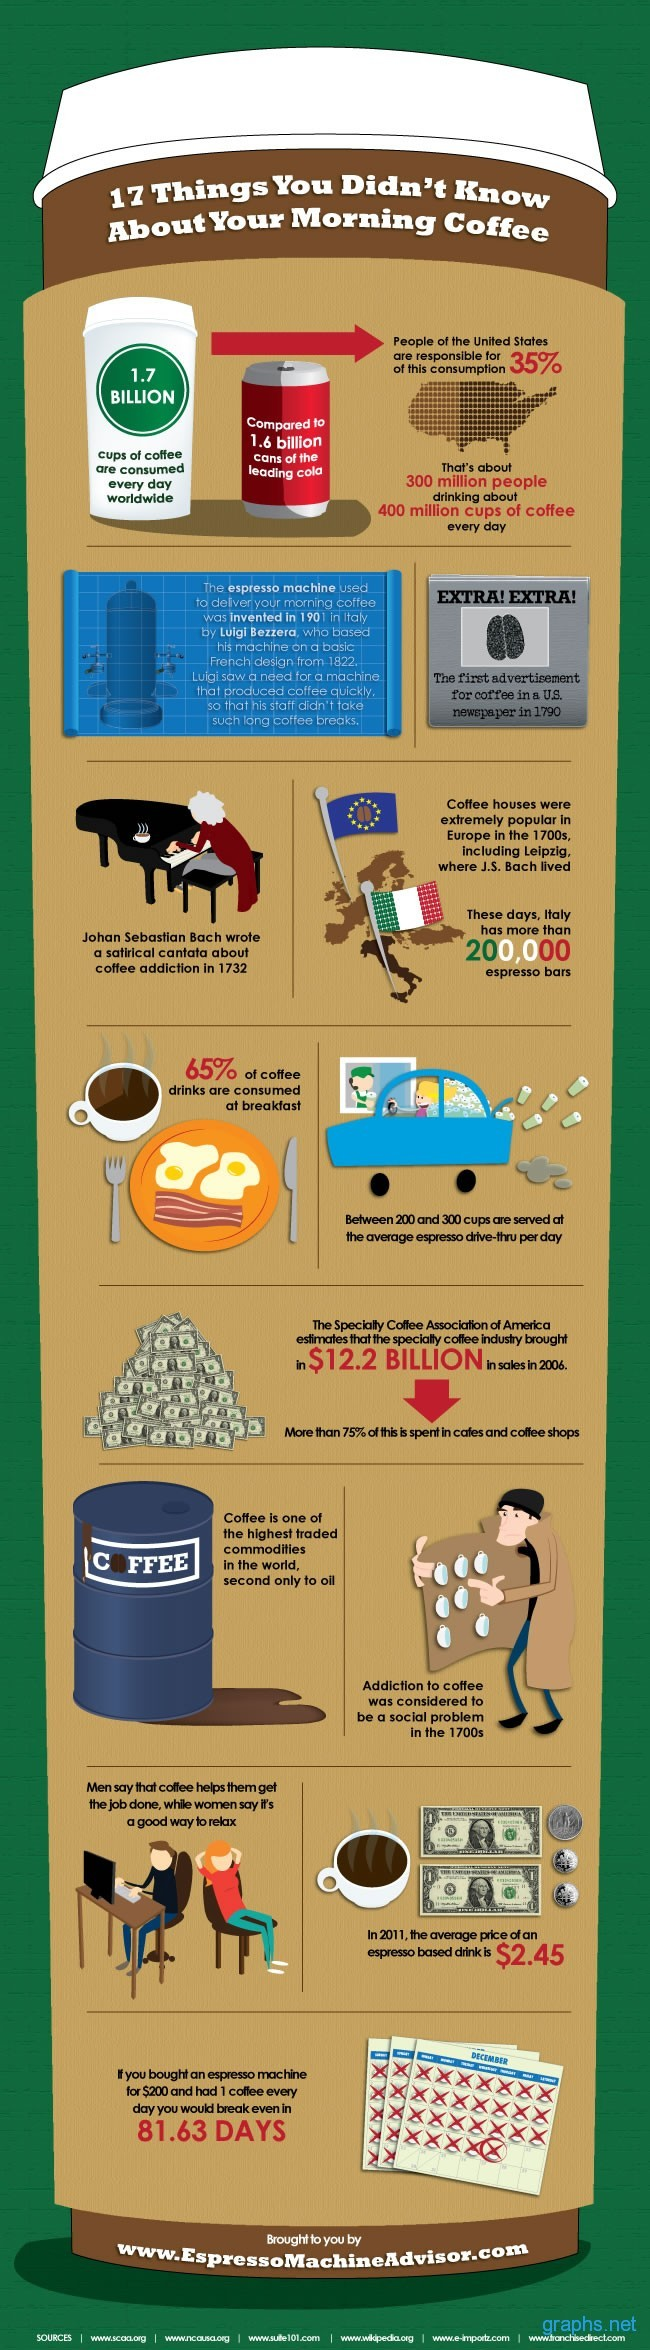 America Coffee Consumption Statistics